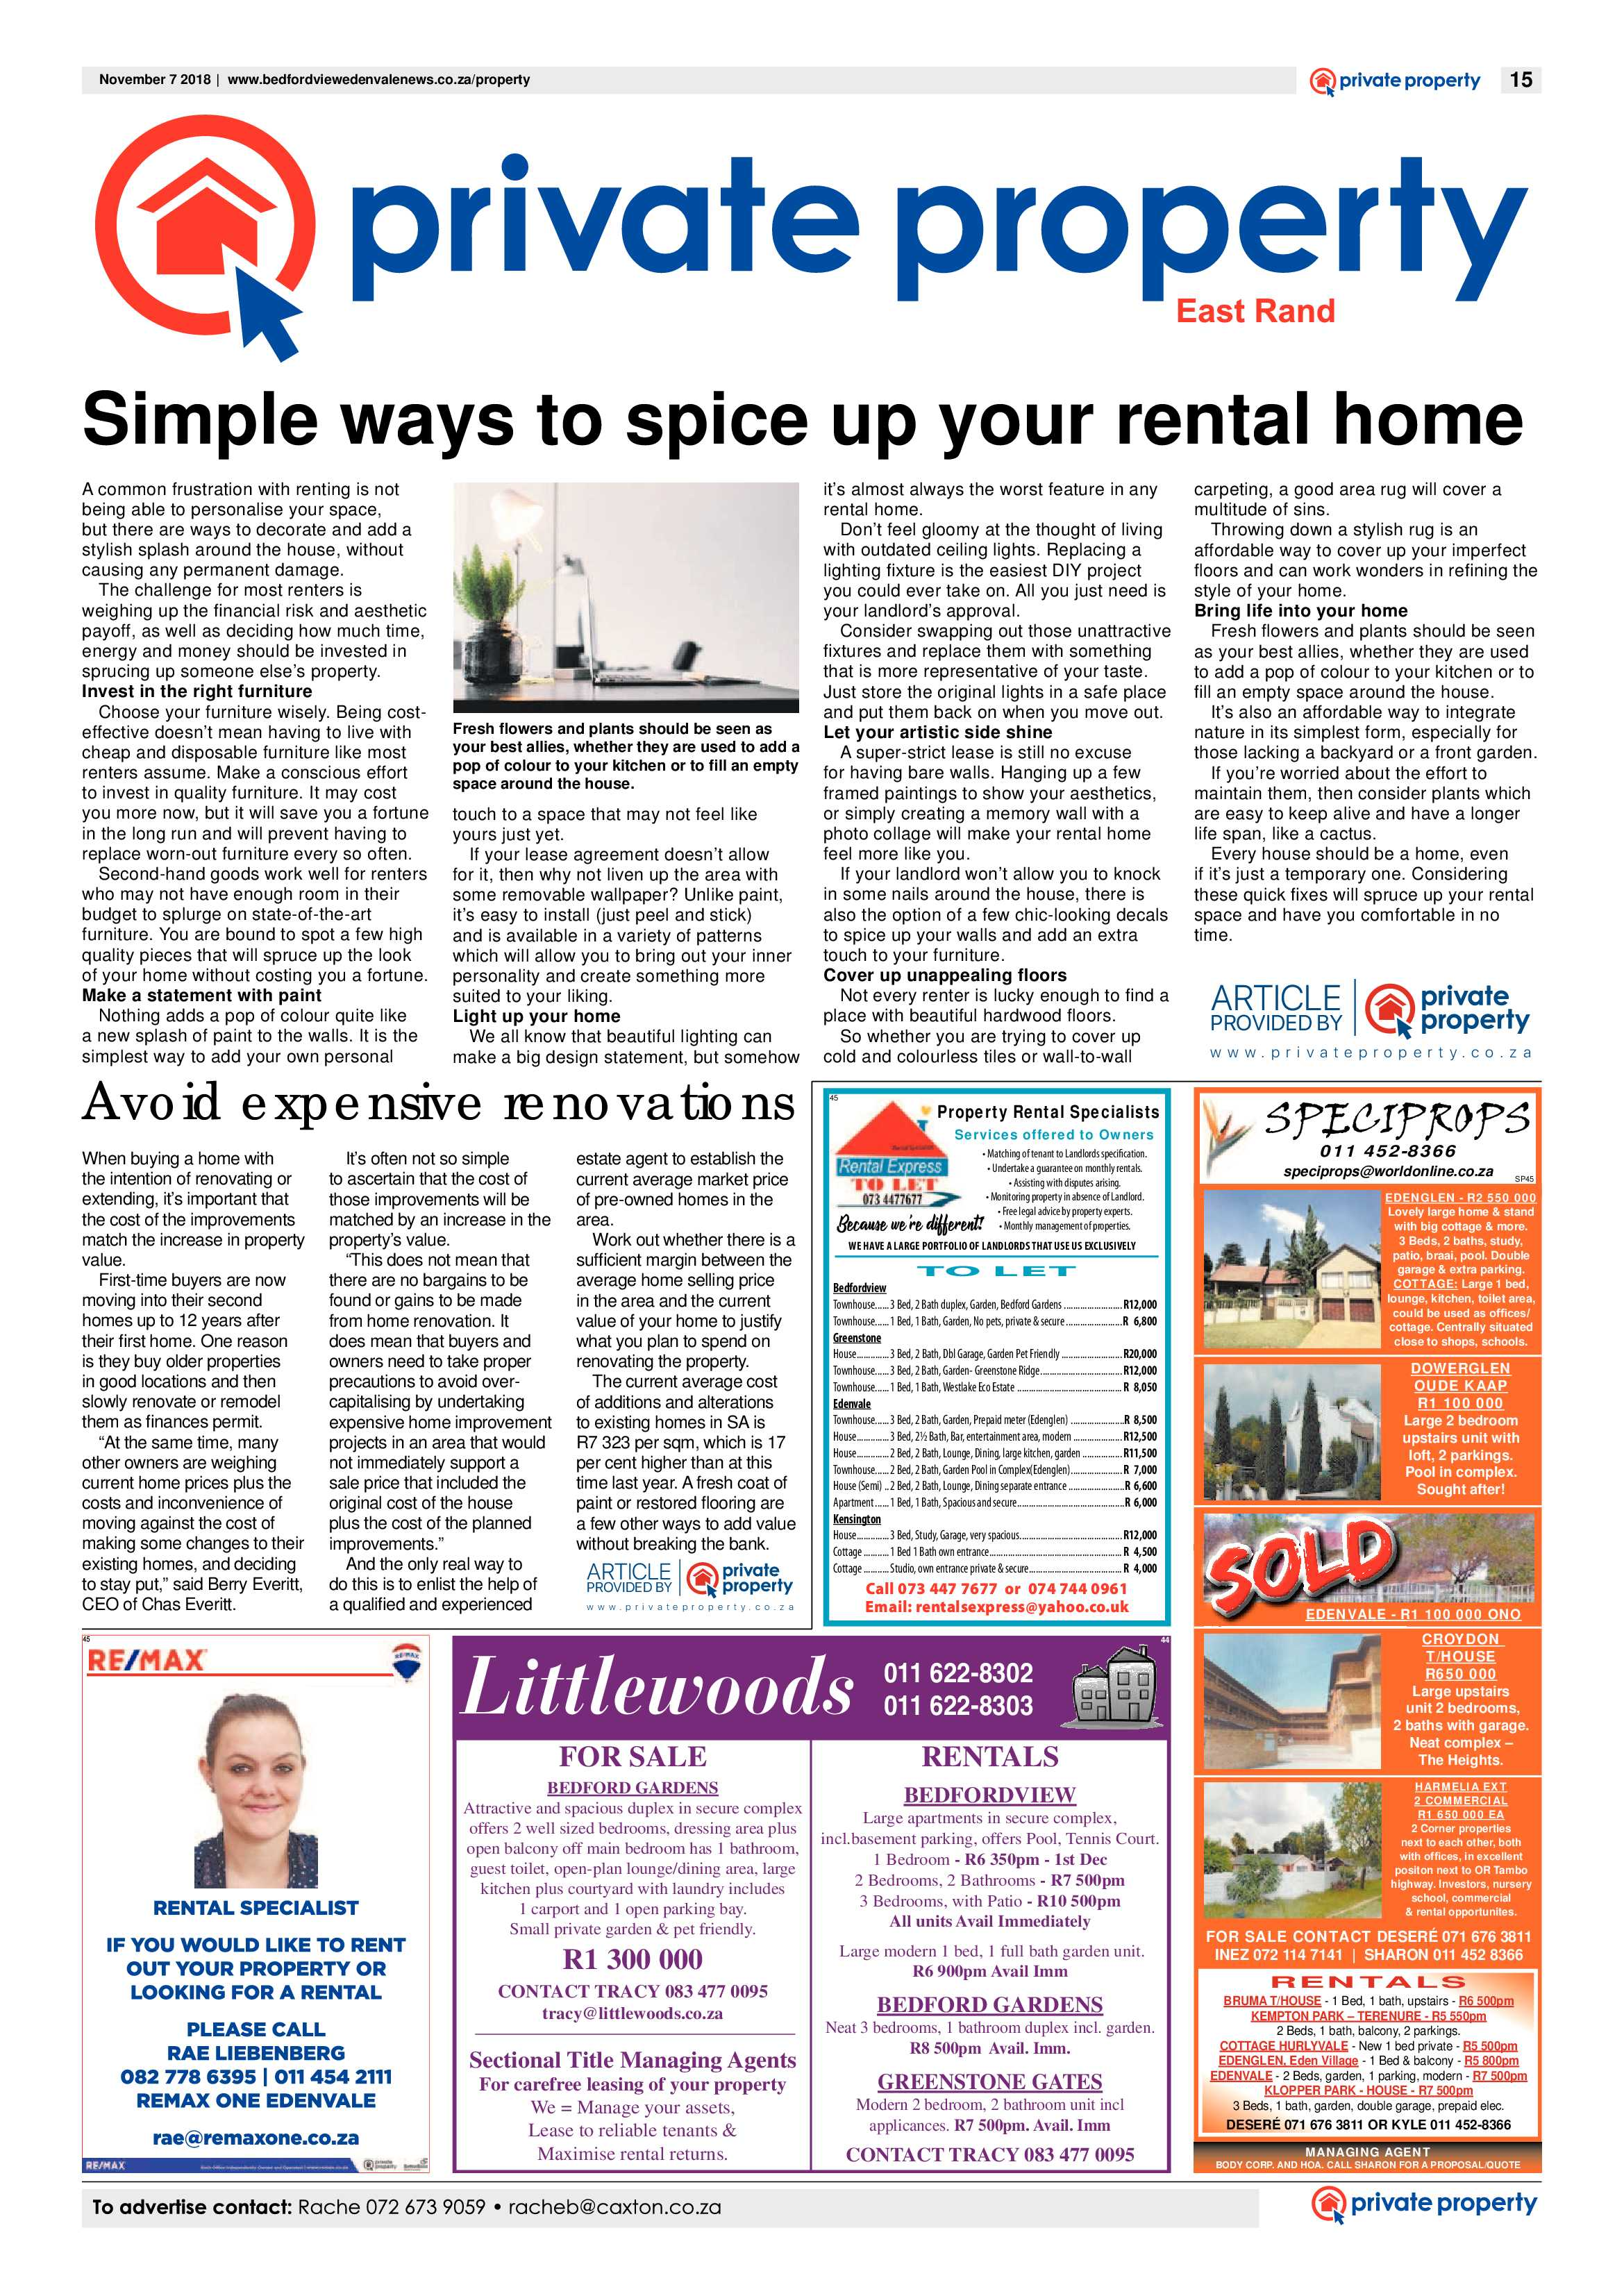 bedfordview-edenvale-news-07-november-2018-epapers-page-15